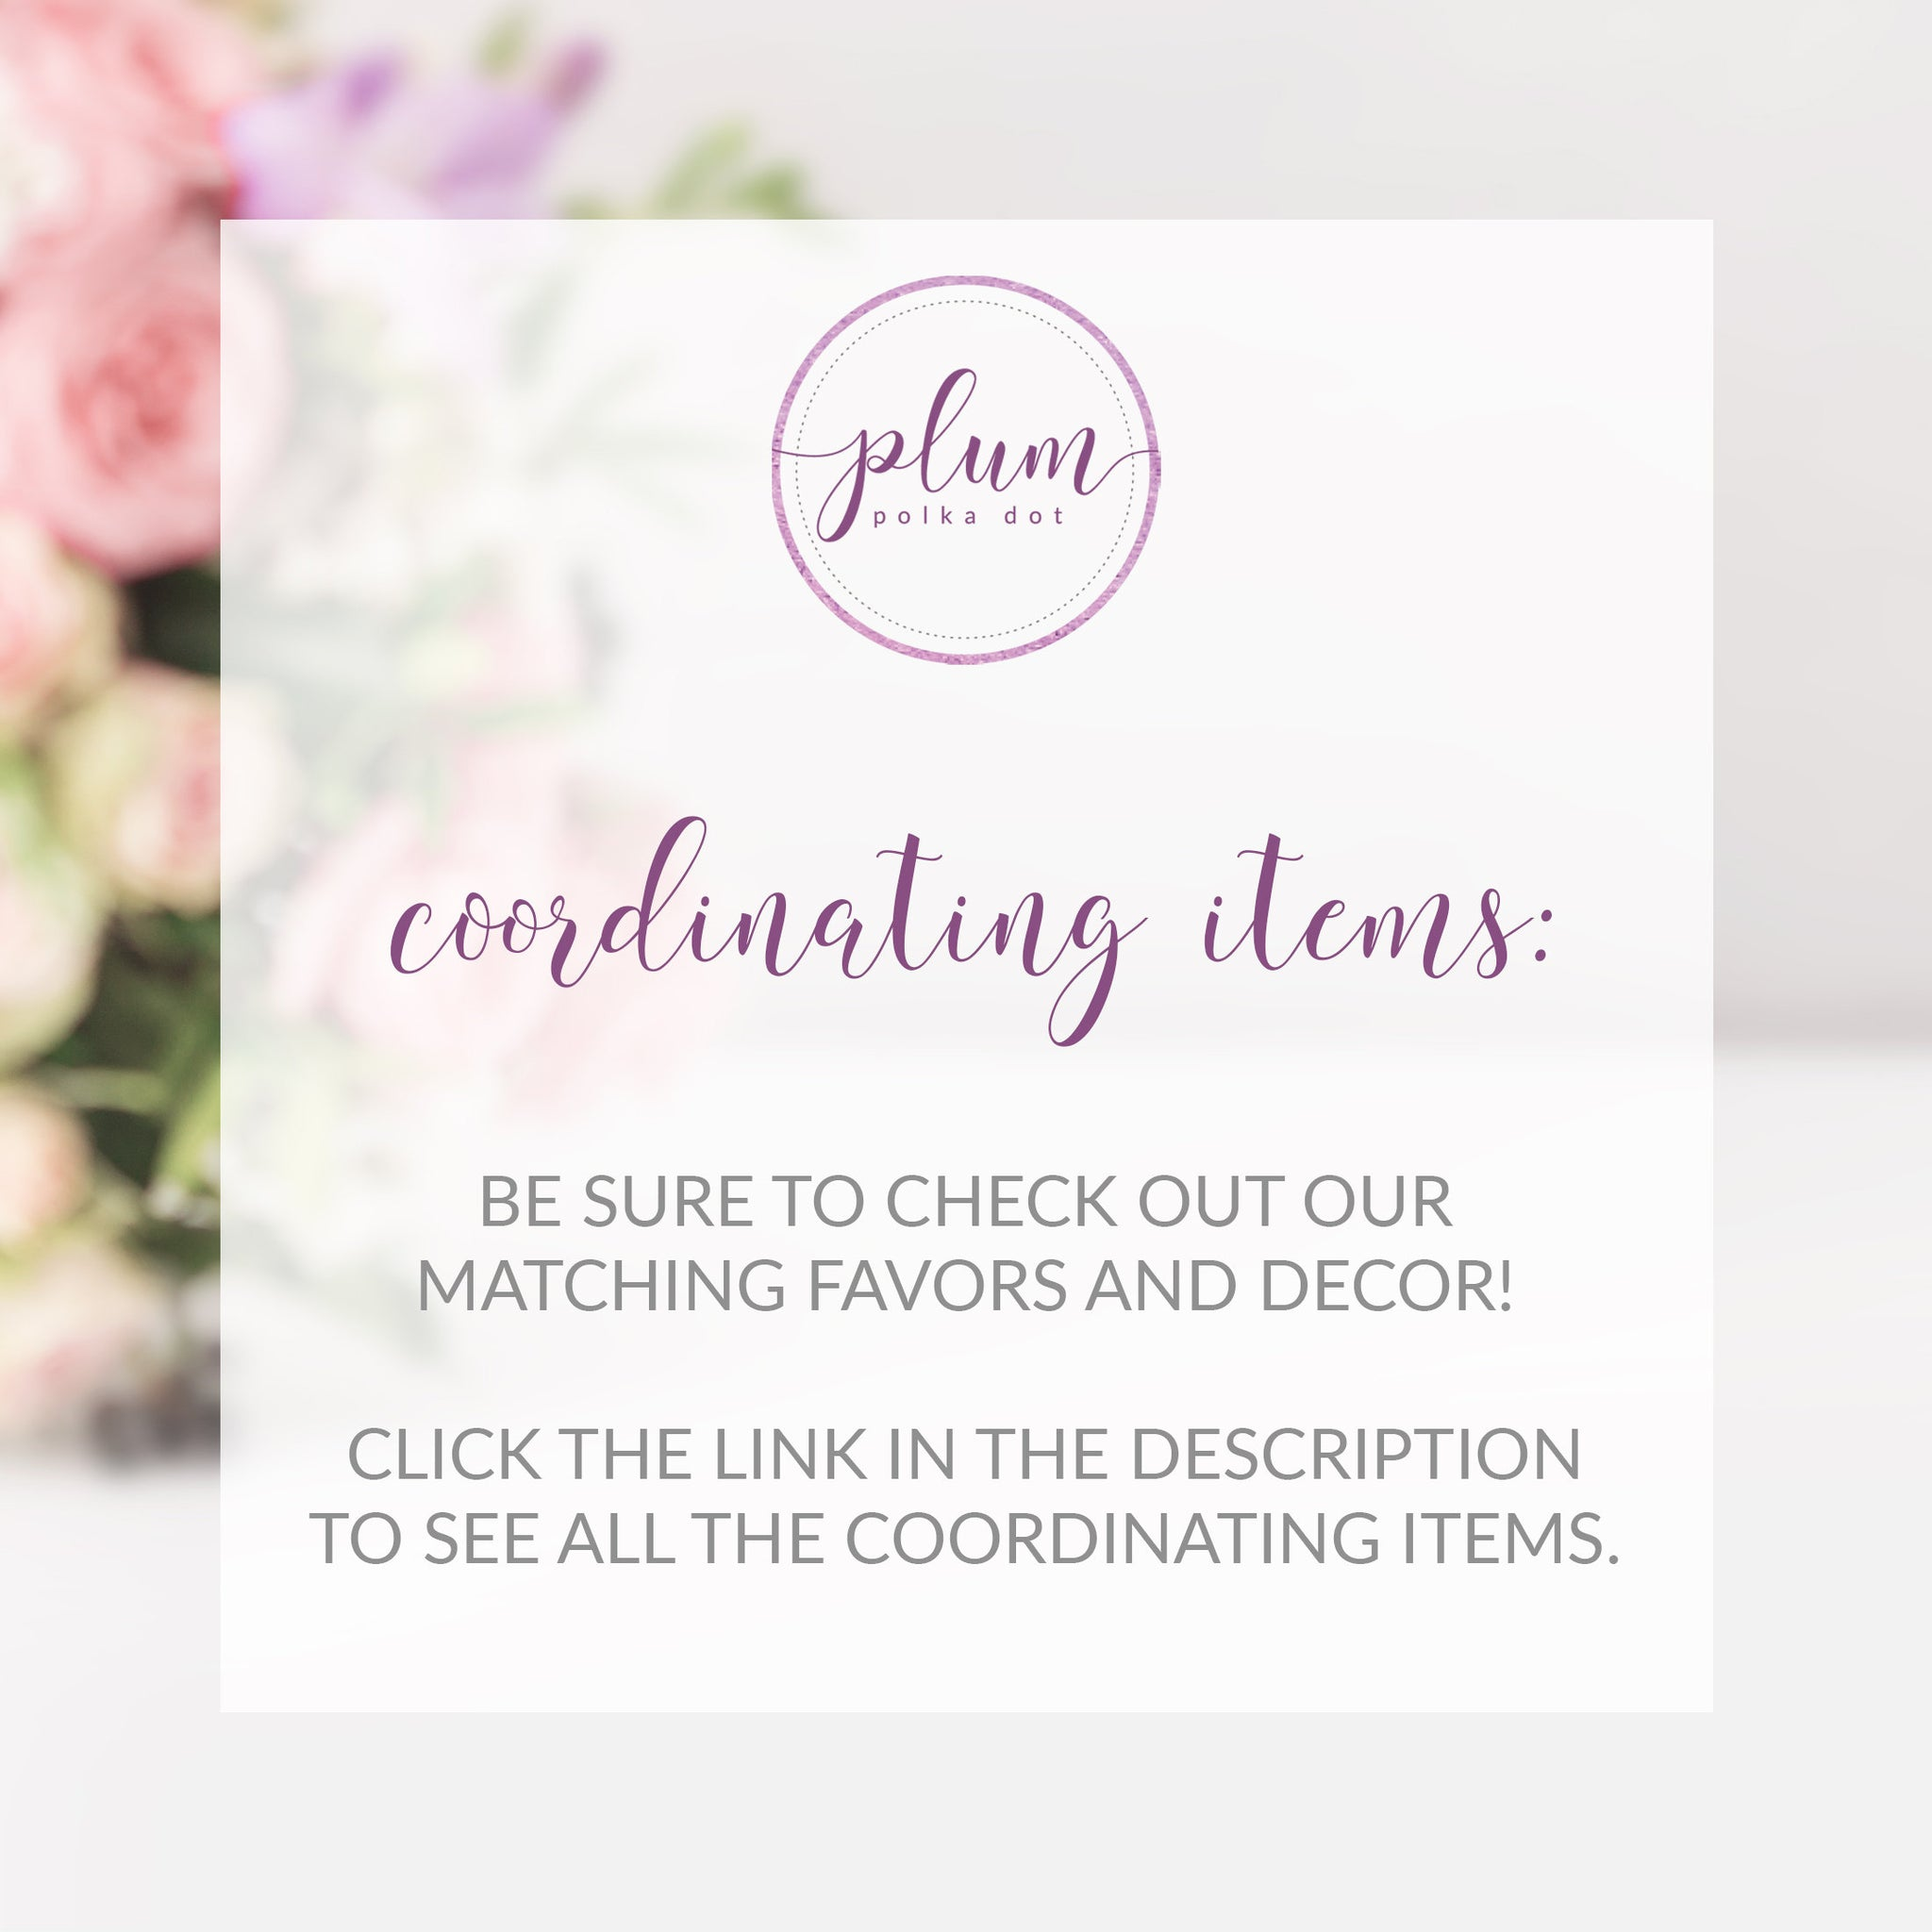 Blush Floral Greenery Drinks Sign Printable INSTANT DOWNLOAD, Gold Birthday, Baby Shower, Bridal Shower, Wedding Decoration - BGF100